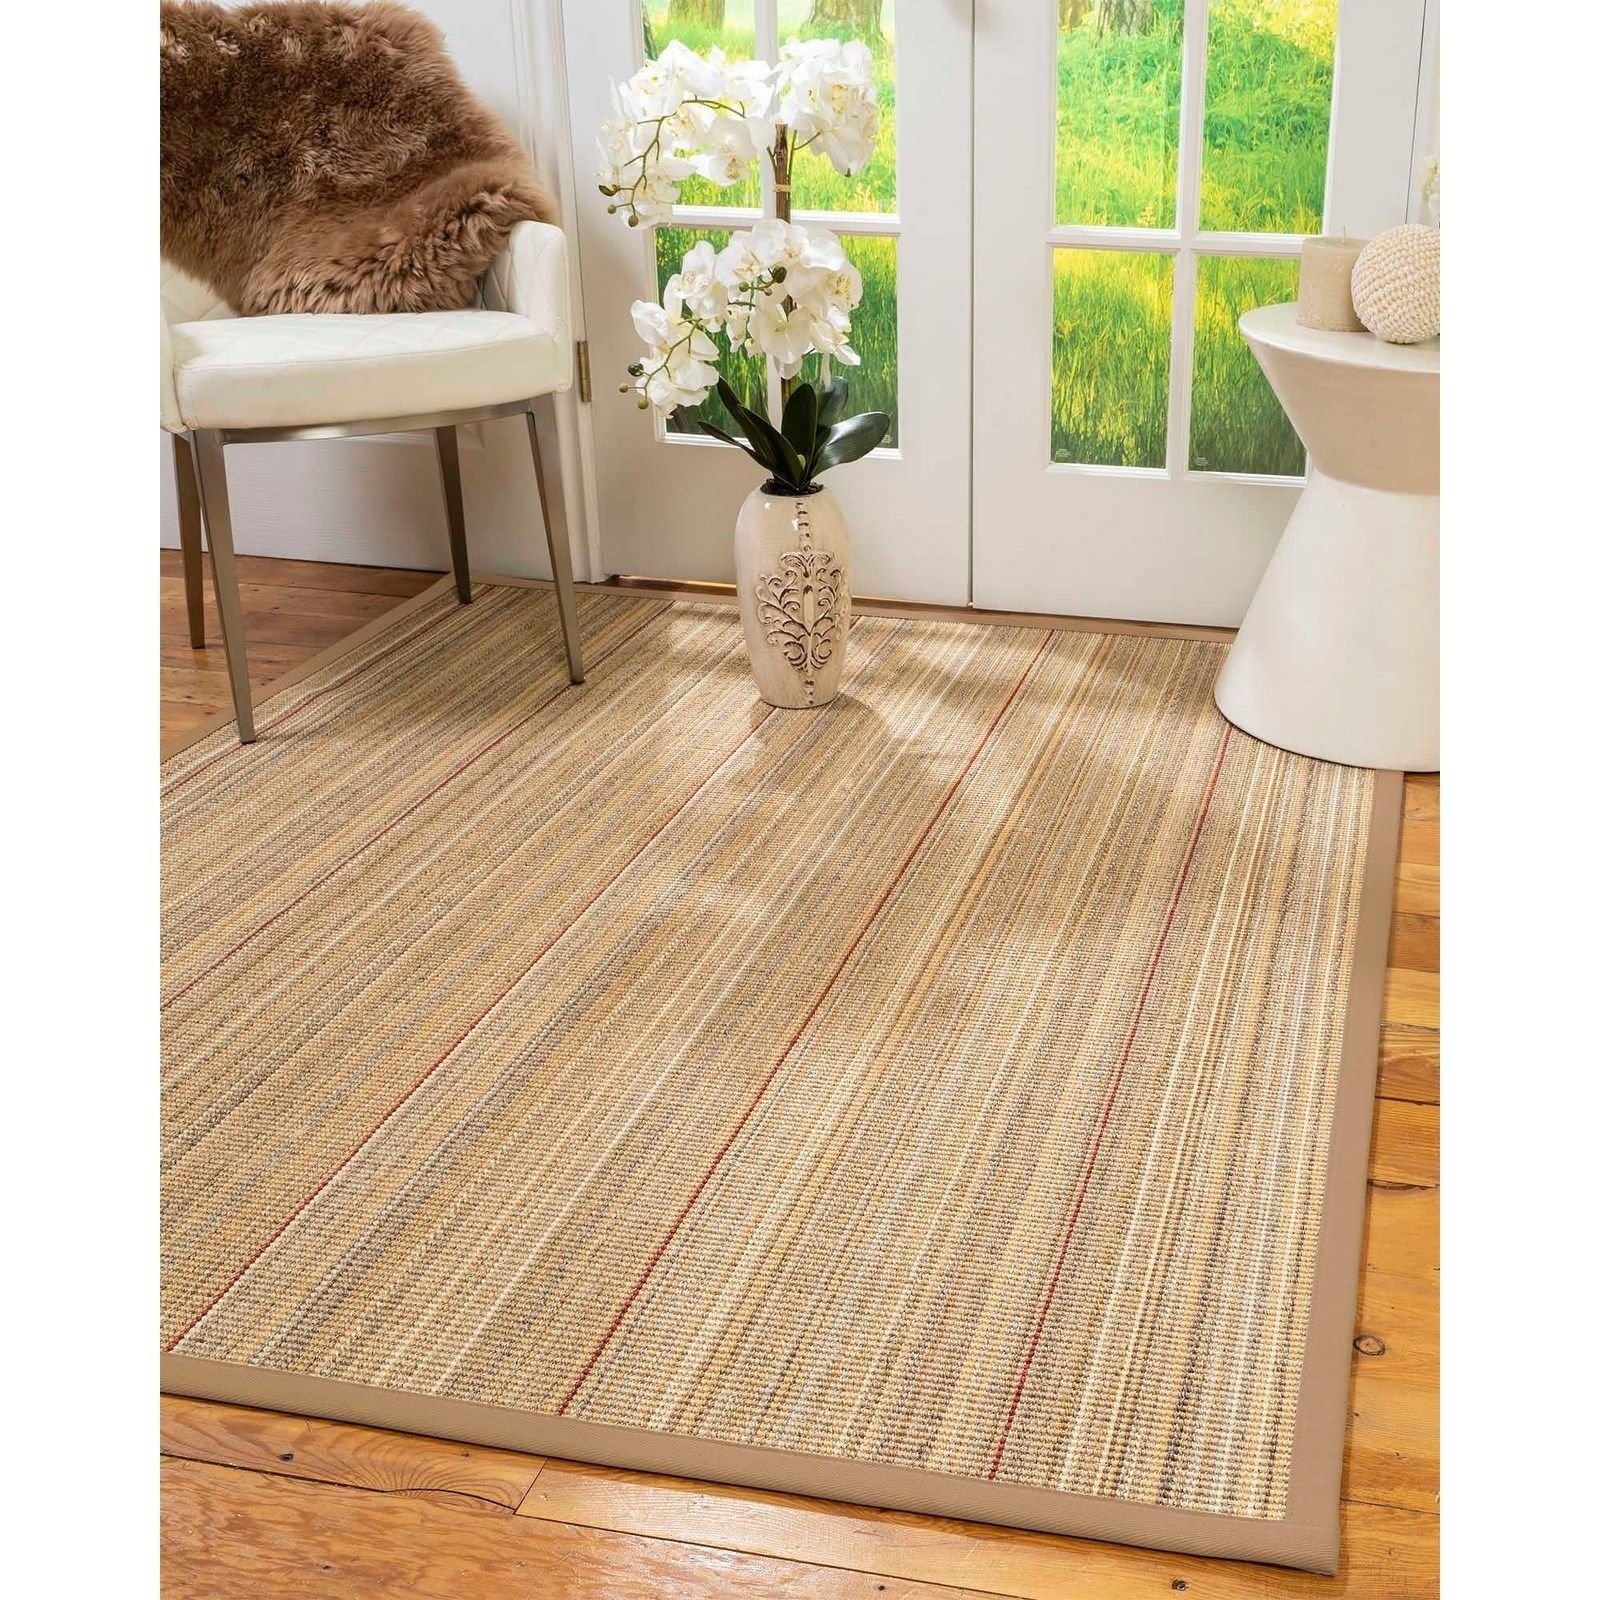 Natural Area Rugs 100 Natural Fiber Handmade Resort Brown Multi Sisal Rug Wheat Border 2 6 X 12 Area Rugs Sisal Rug